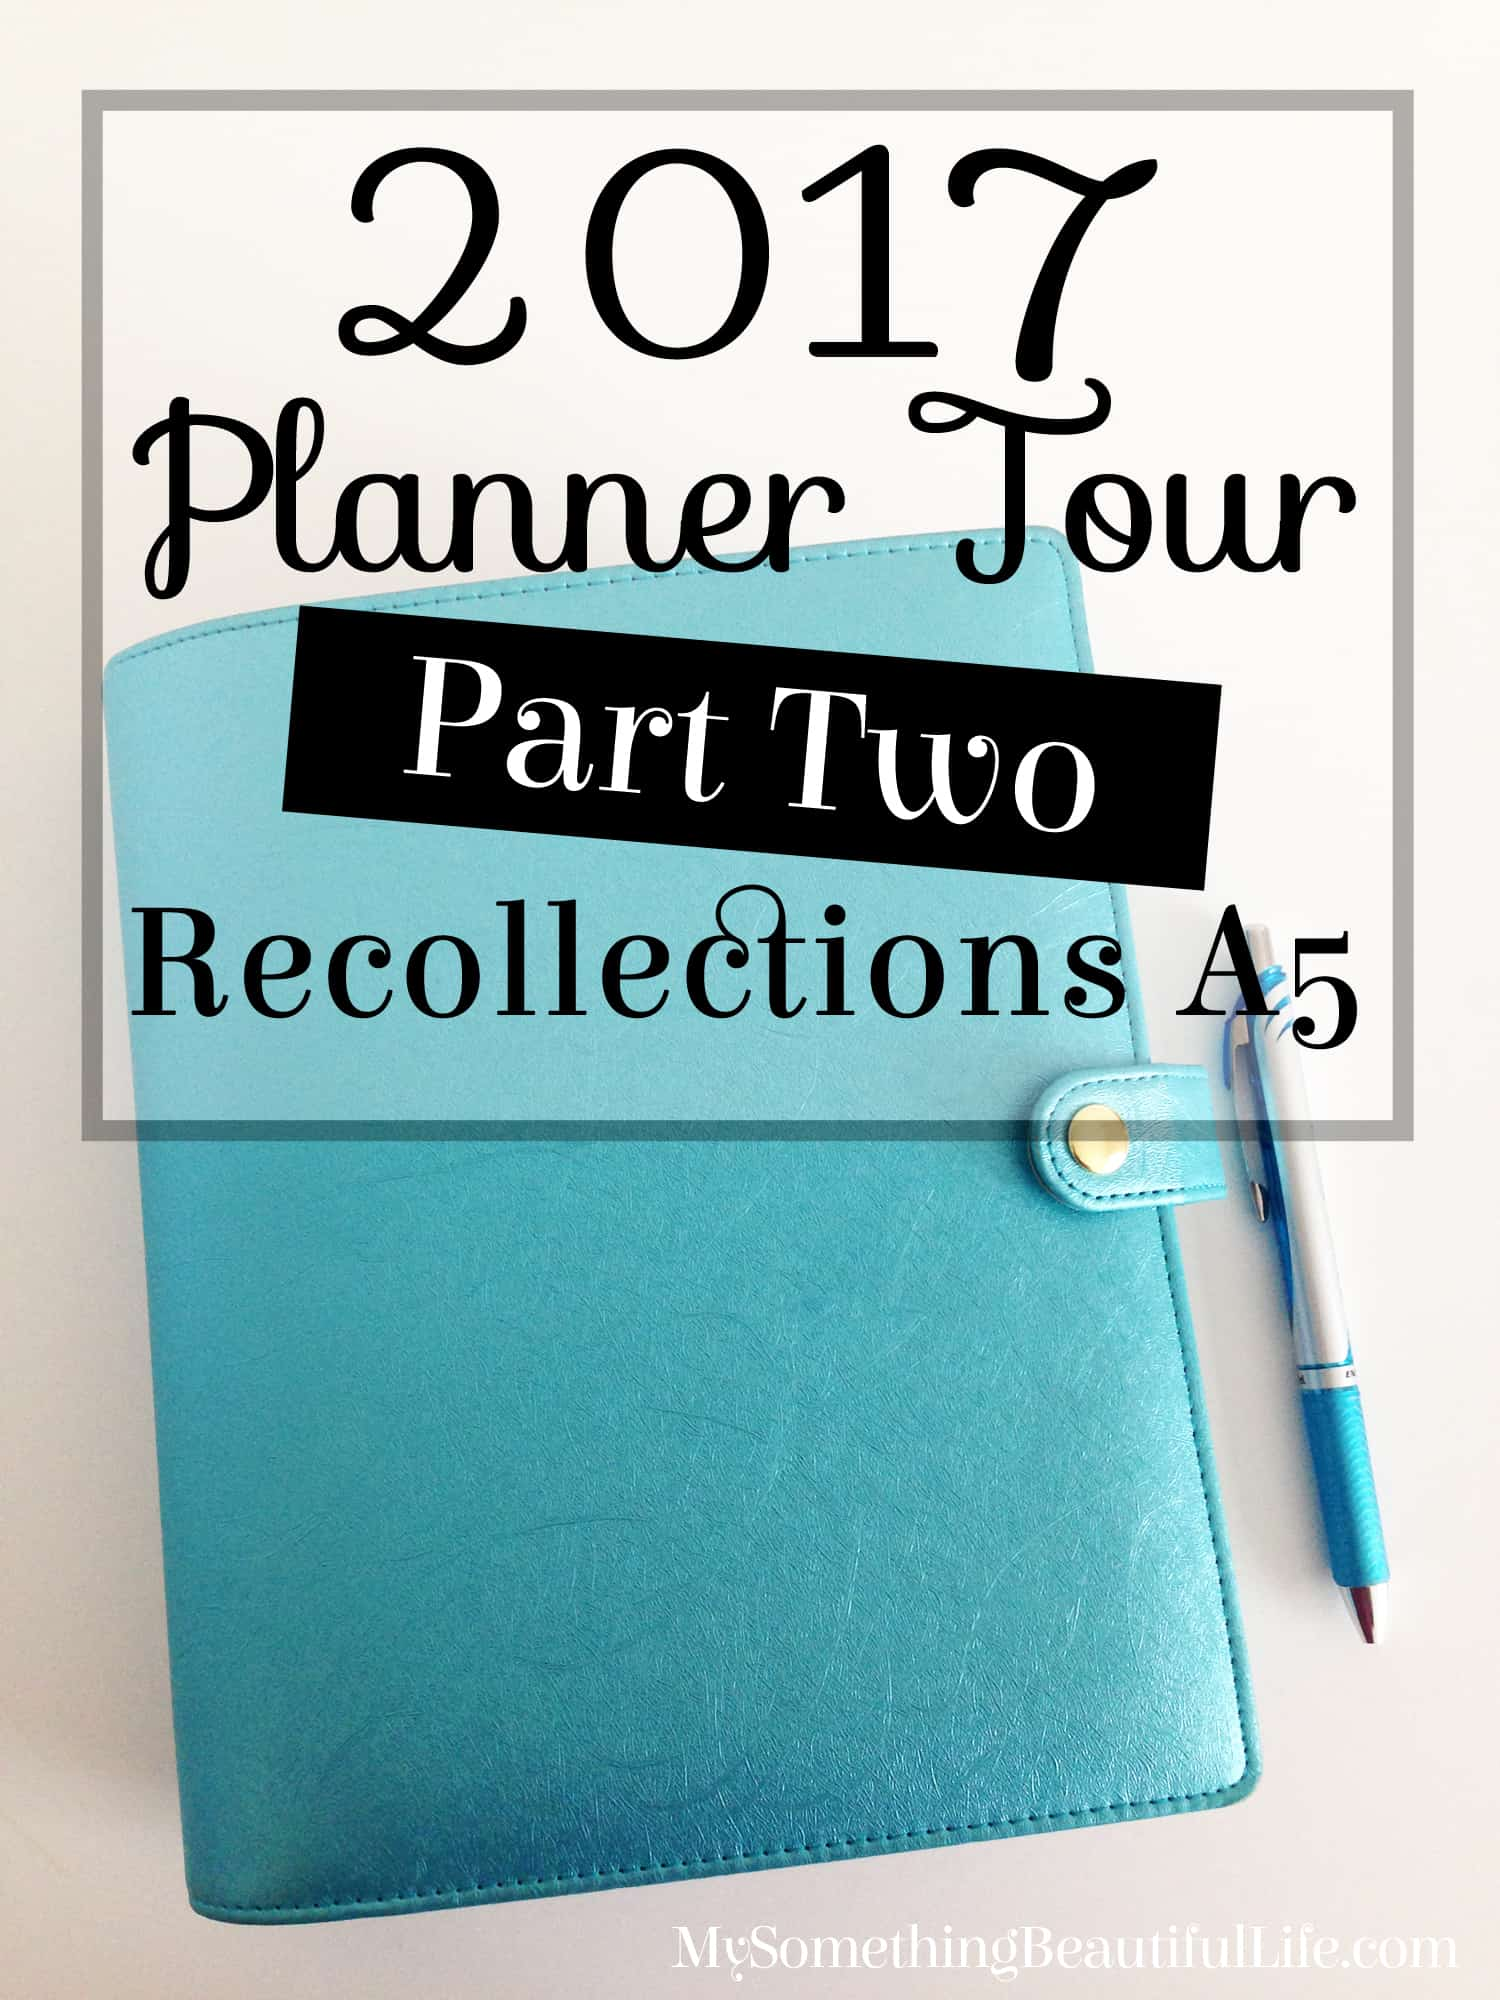 2017 Planner Setup | A5 Recollections ring bound planner | Filofax Style Planner